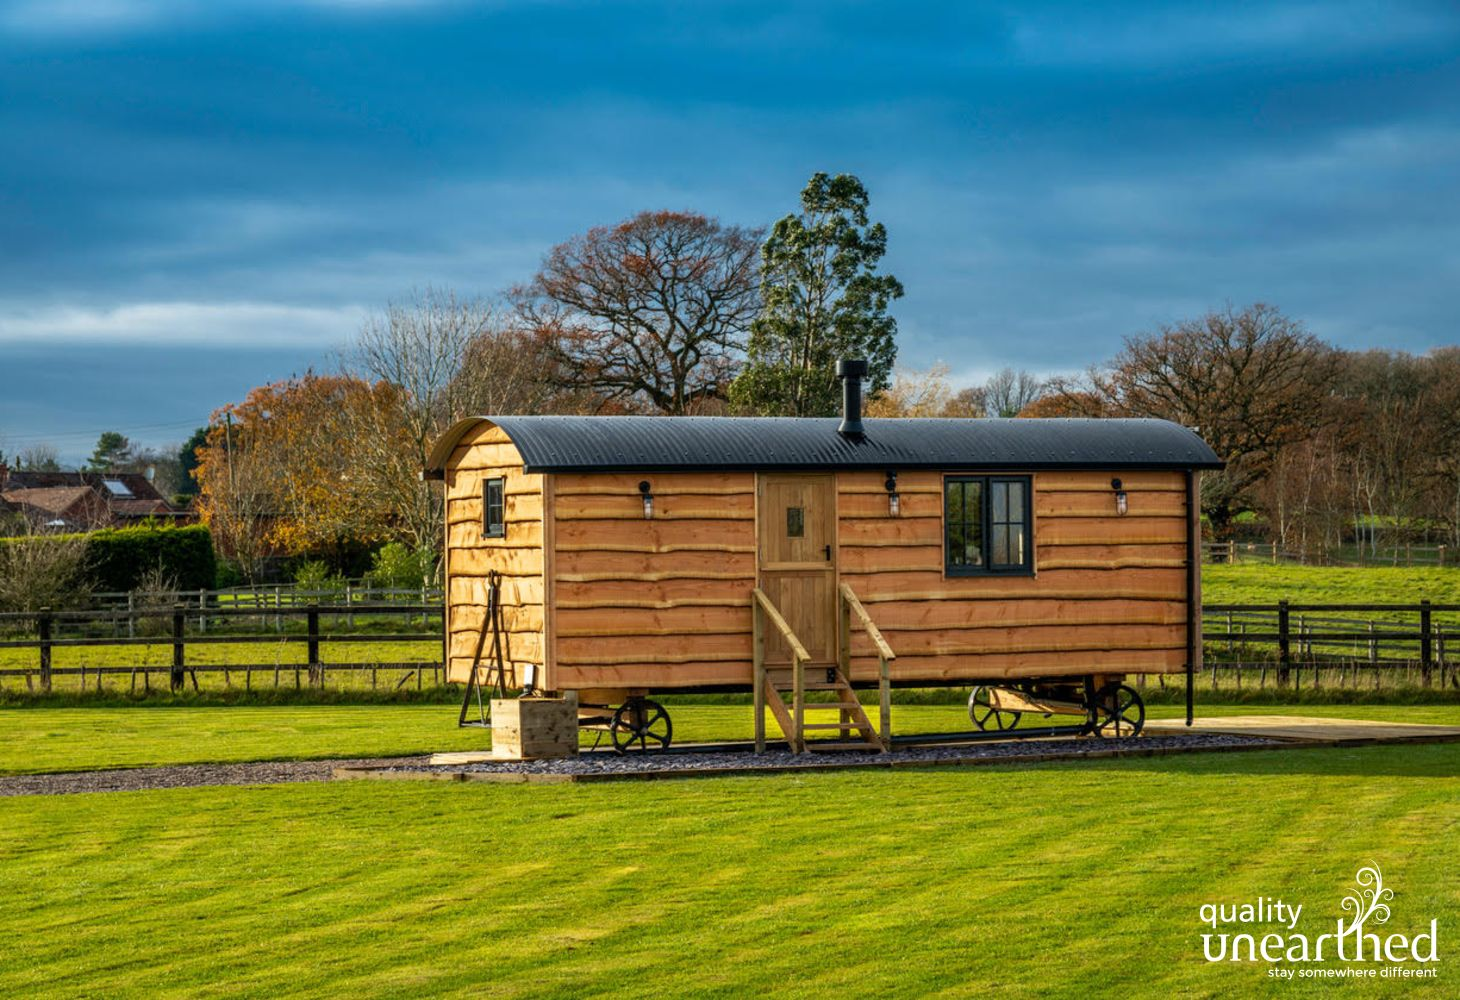 Monkwood Shepherds Hut in Worcestershire